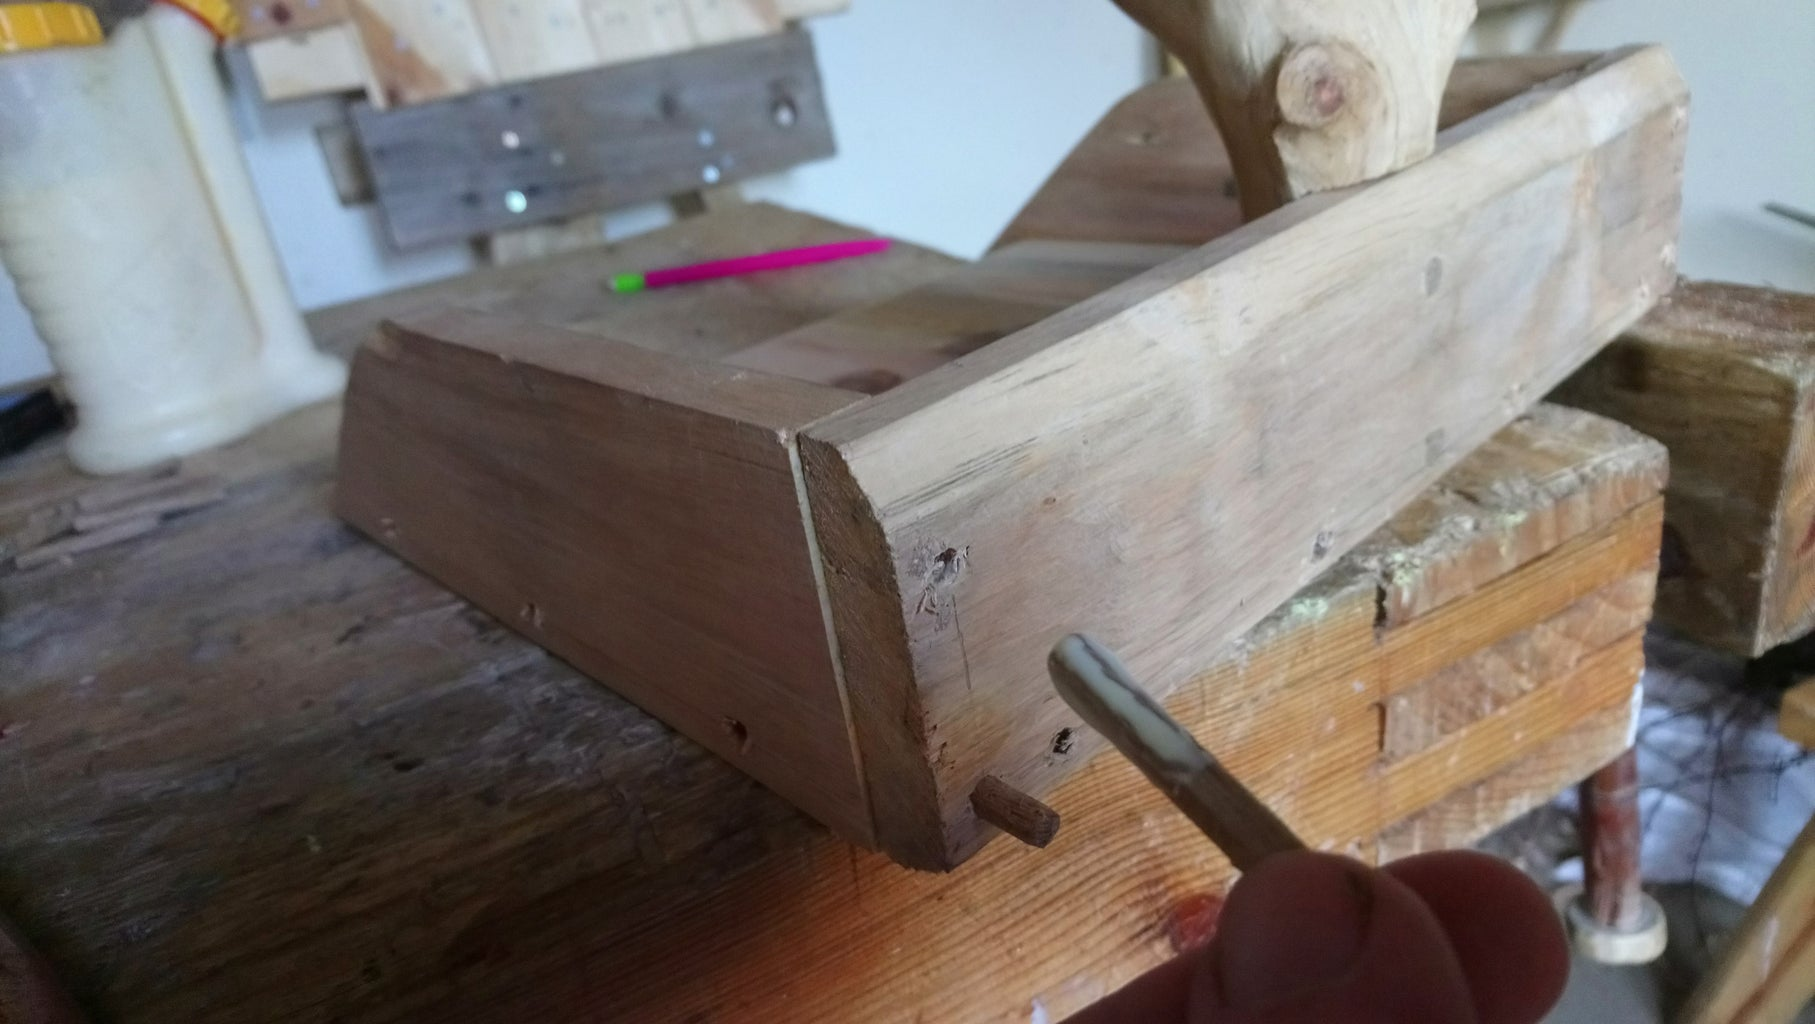 Inserting Dowels and Finishing the Dustpan